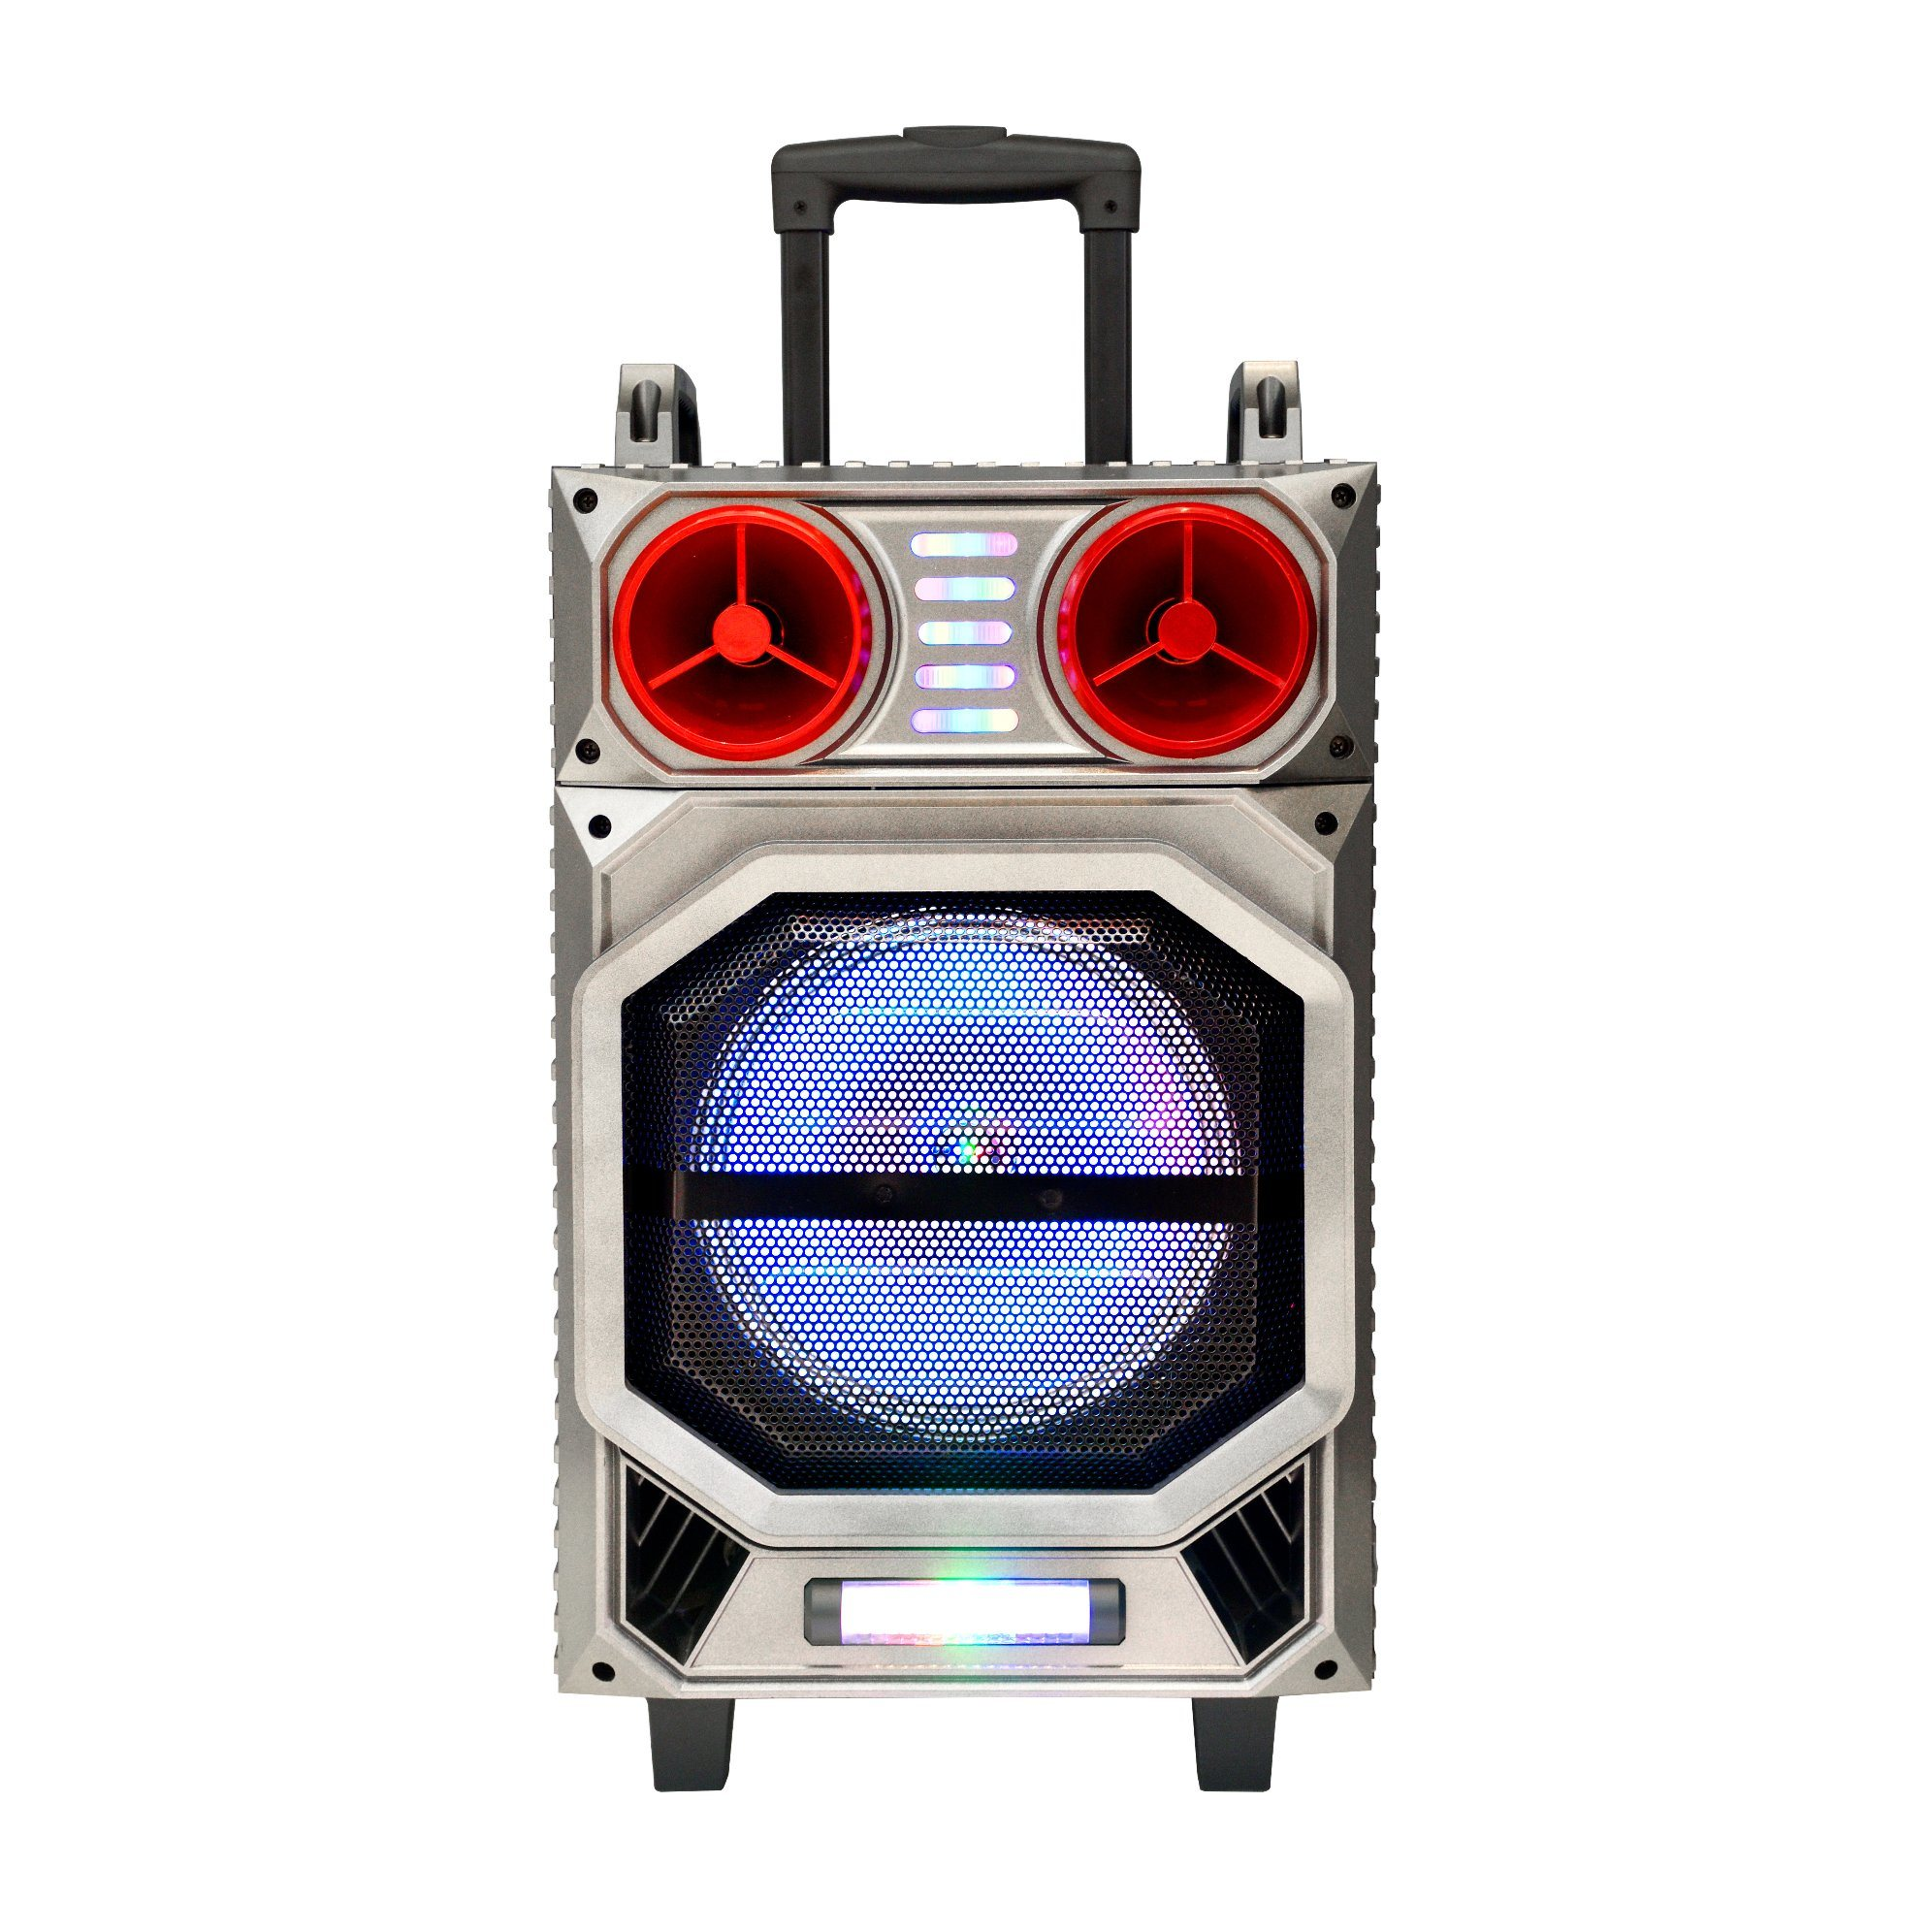 Feiyag/Temeisheng Pdisco Light Speaker, Active Speaker, 10 Inch Speaker with High Quality and Disco Music F10-22